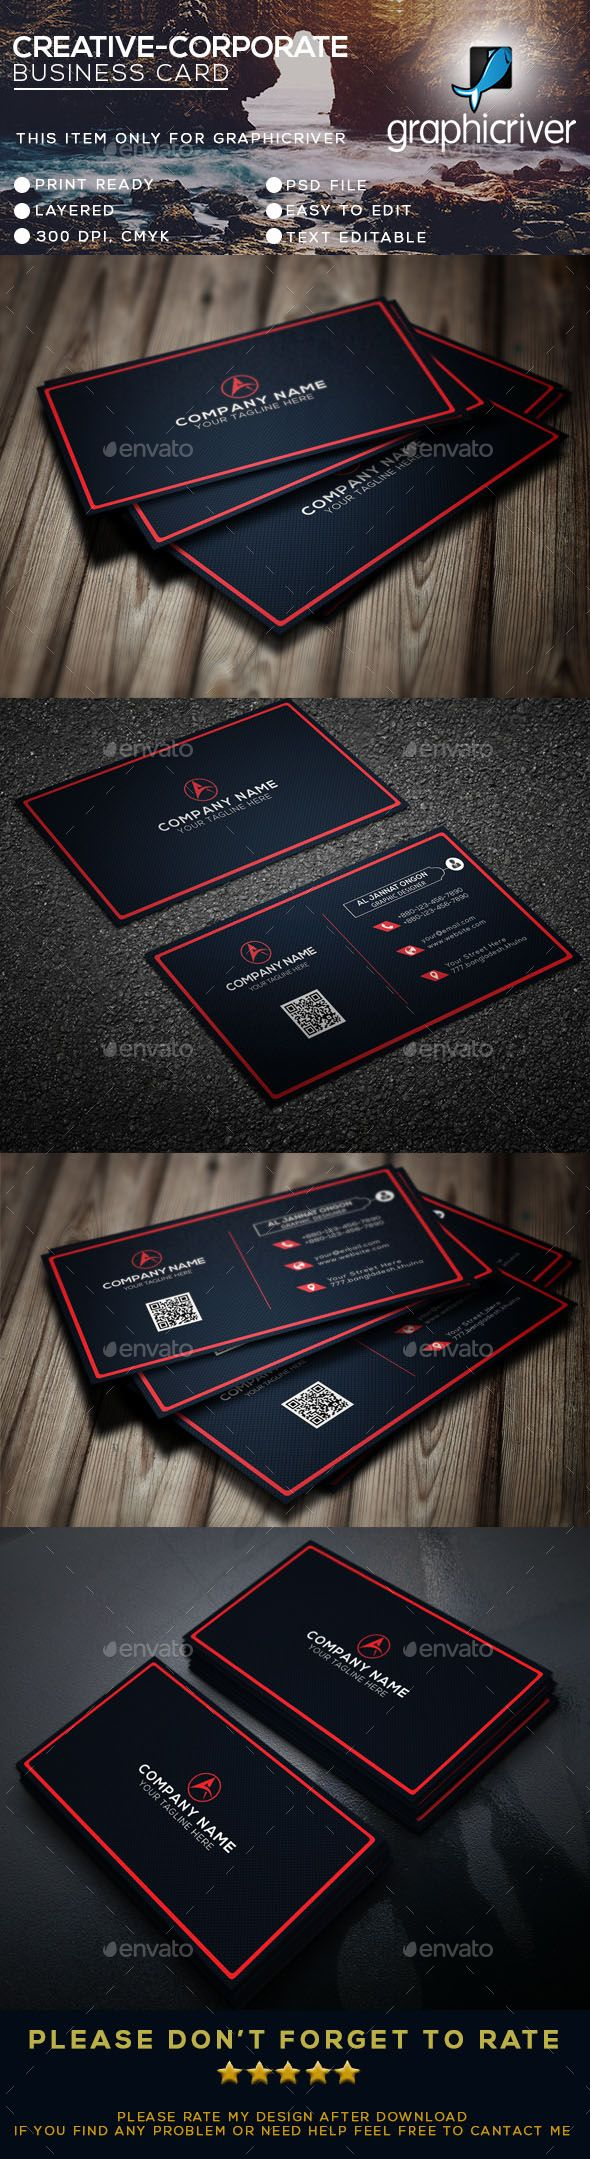 Corporate Business Card - Business Cards Print Templates Download here: graphicr...